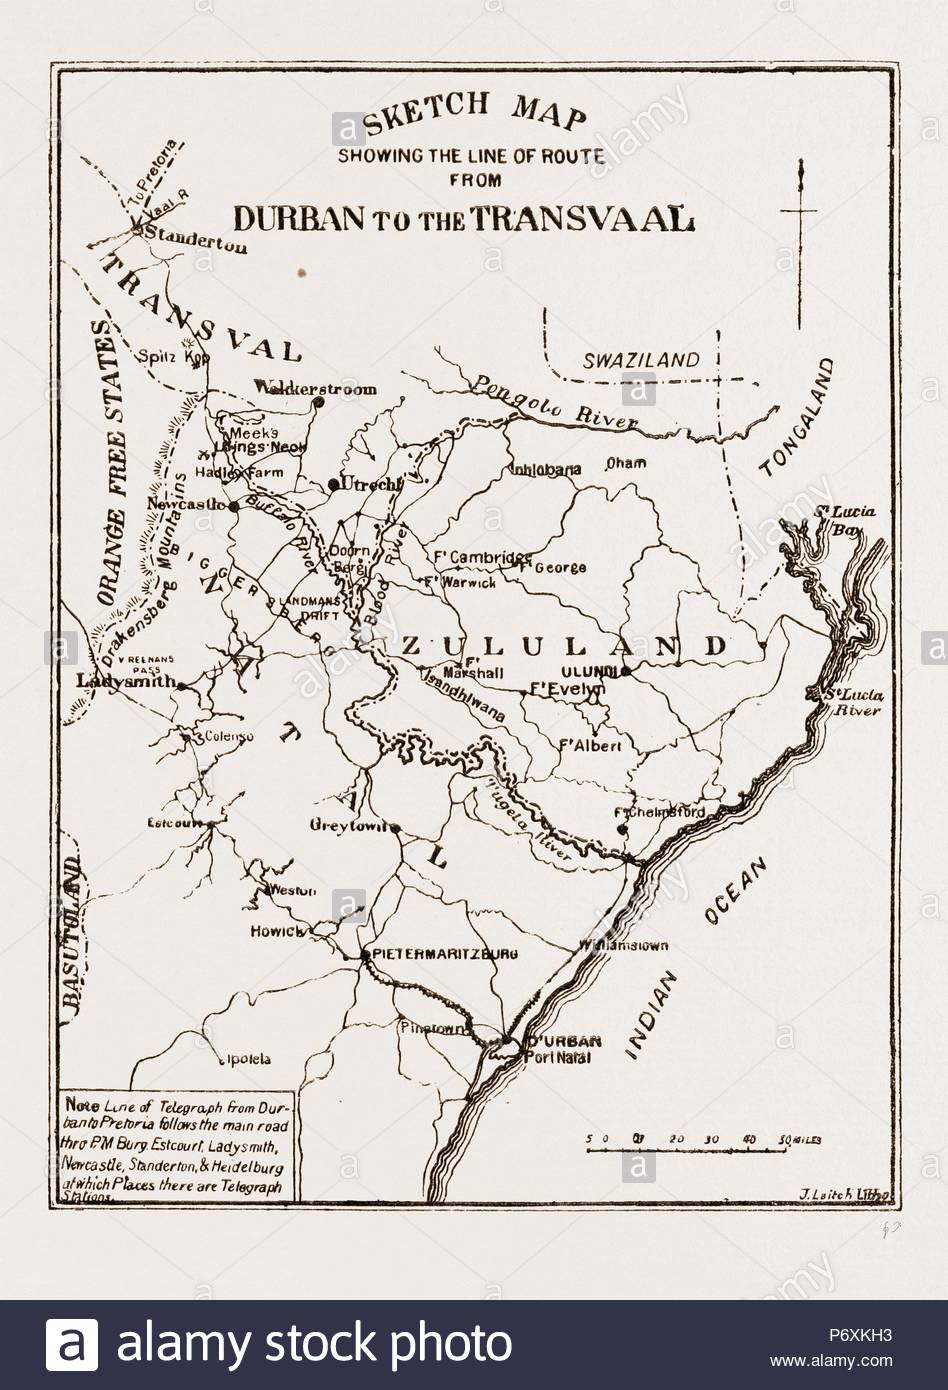 Sketch Map Showing The Road From Durban To The Transvaal South